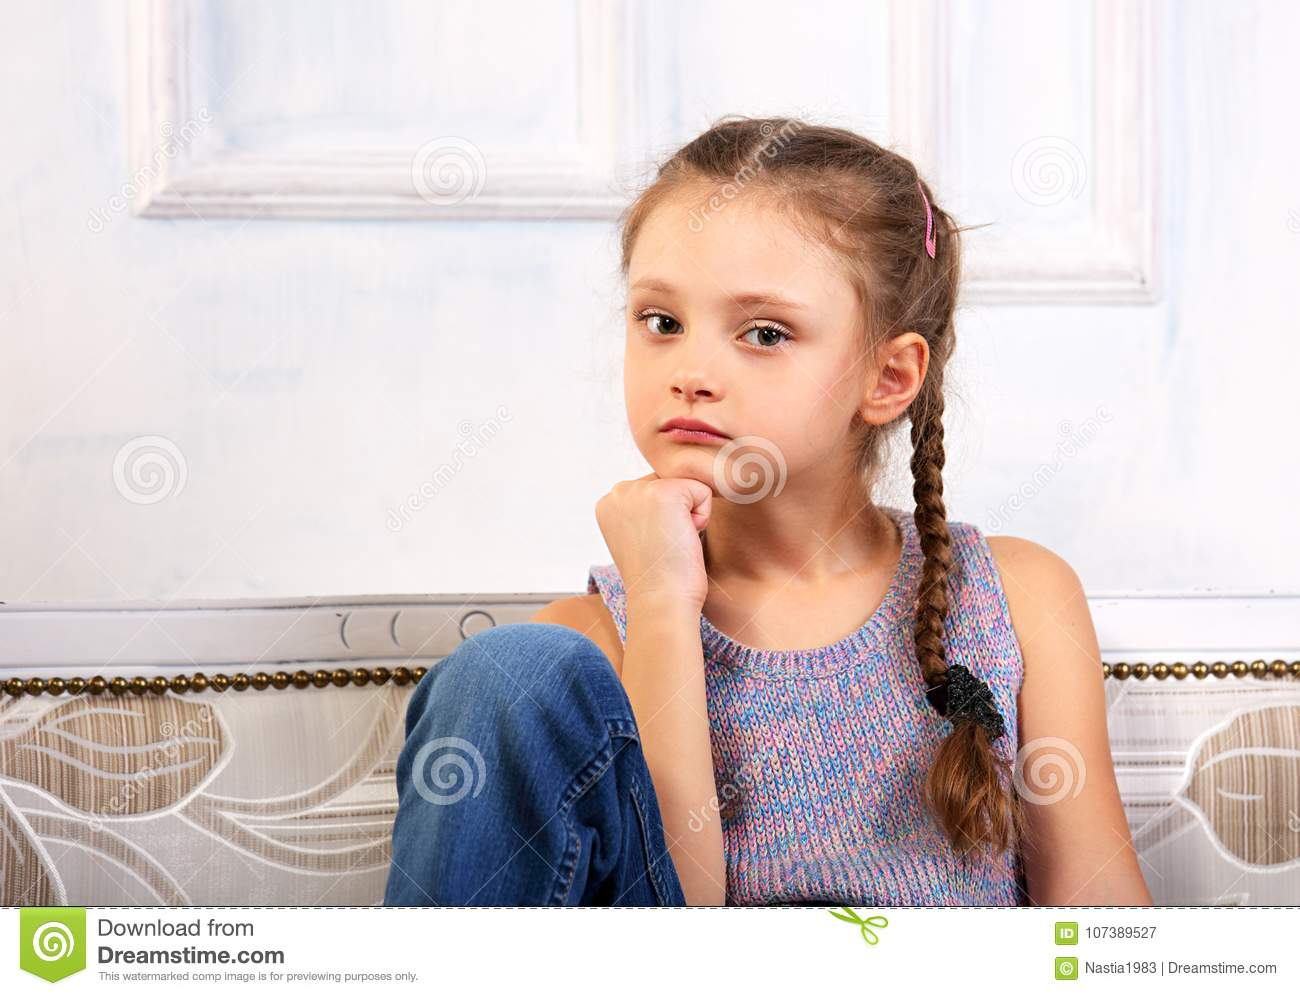 f21cc9eeb Beautiful calm thinking unhappy kid girl sitting on the bench in blue jeans  and fashion blouse looking serious. Studio portrait